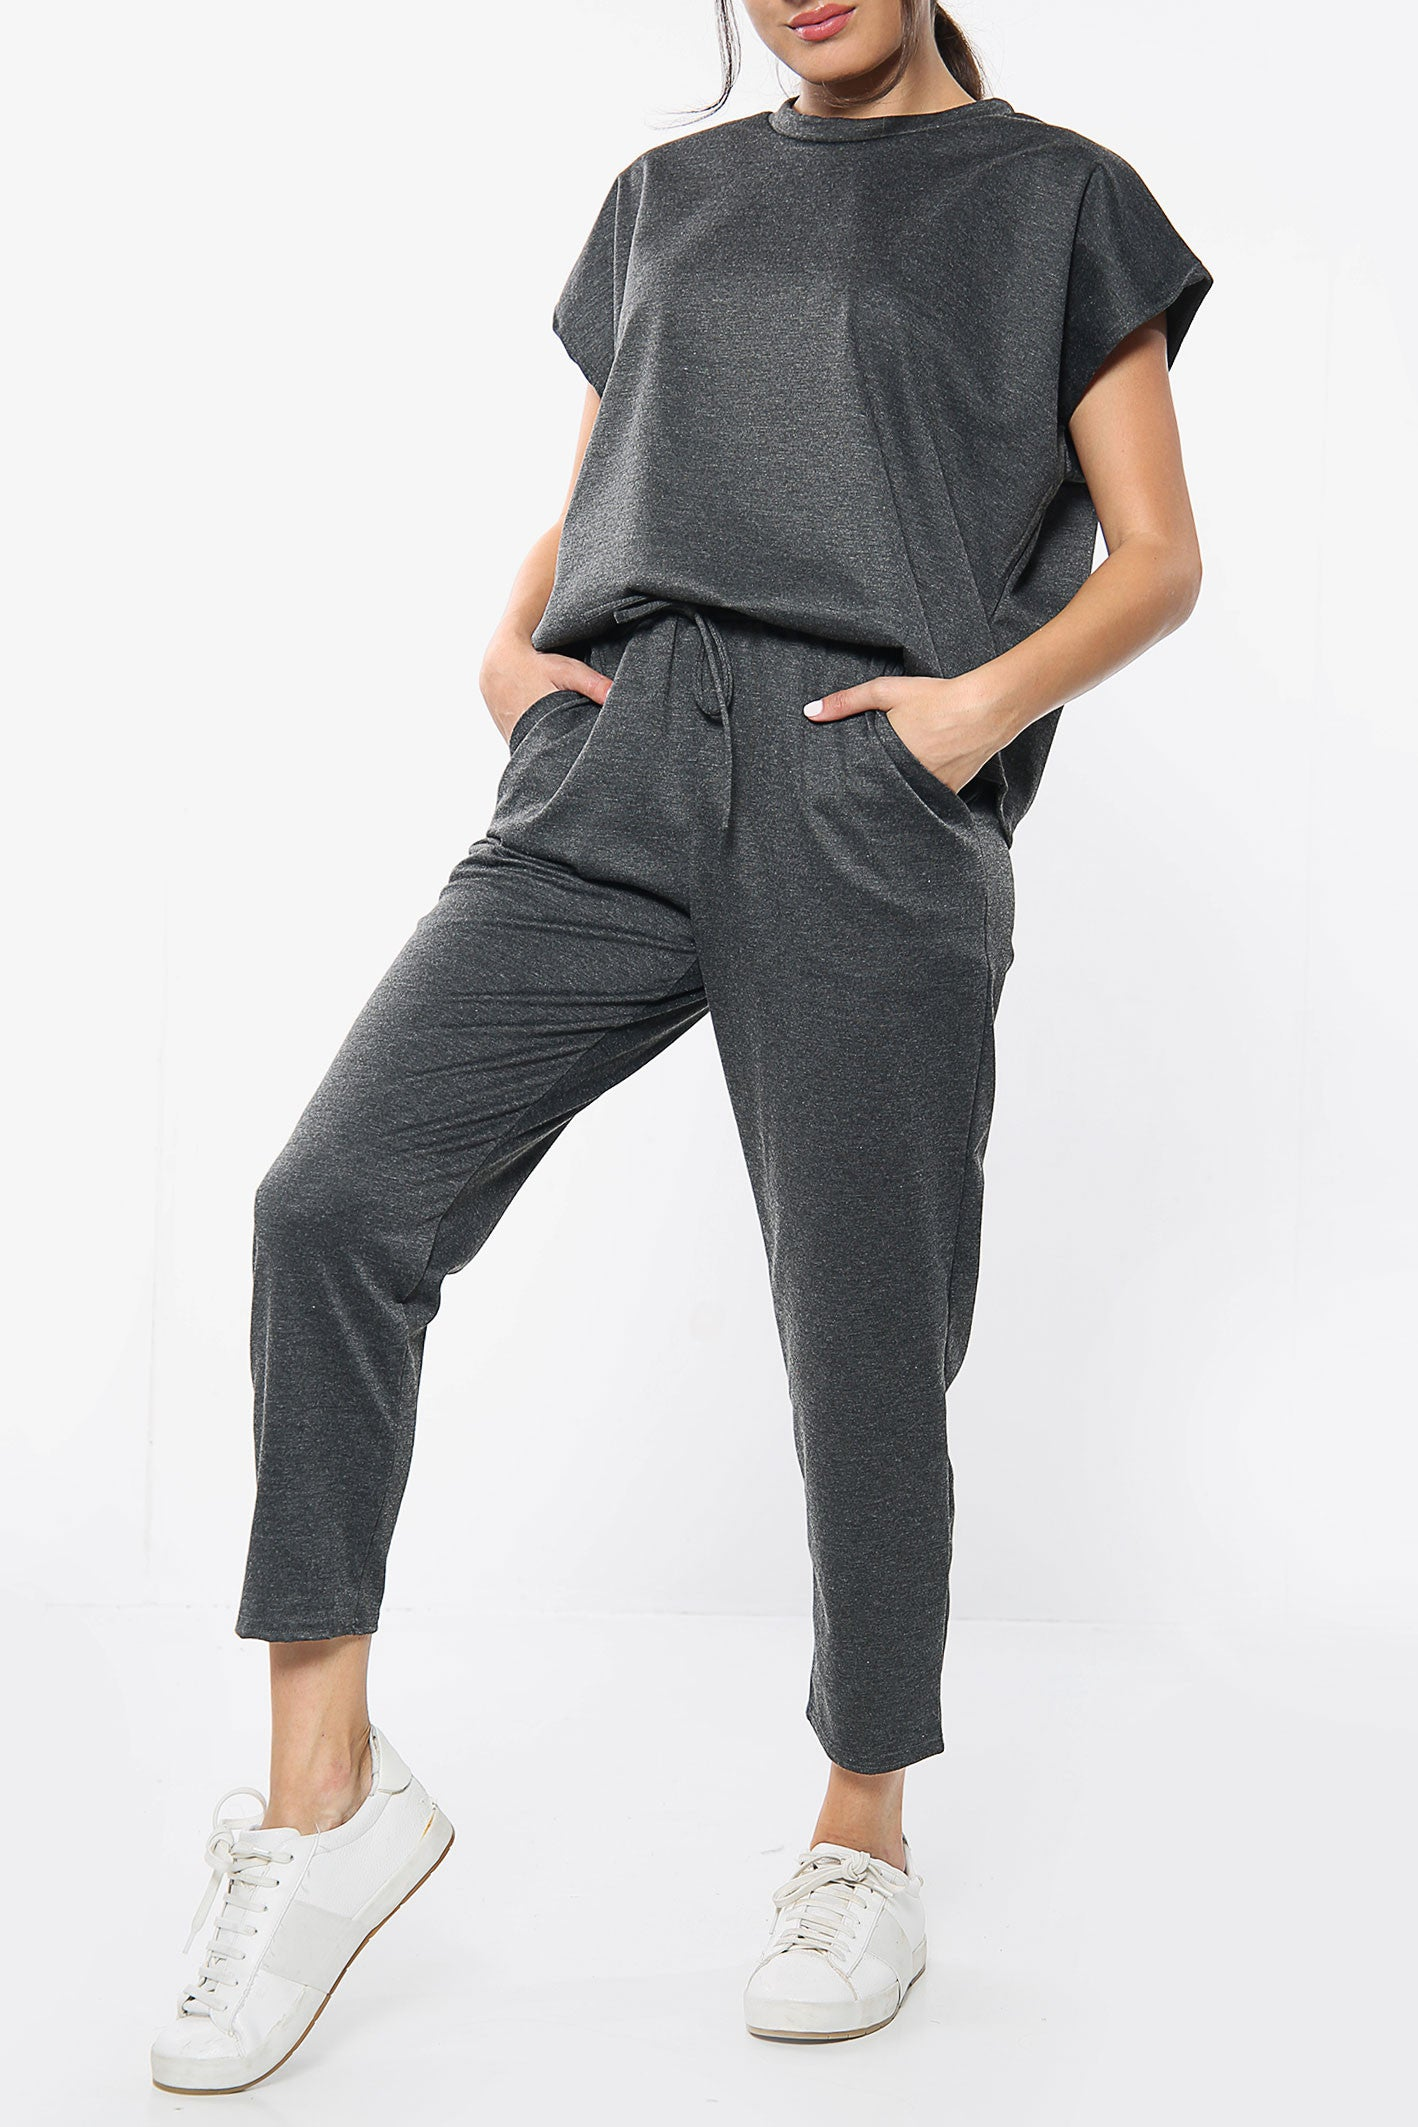 Short Sleeve Boxy Top & Jogger Loungewear Set